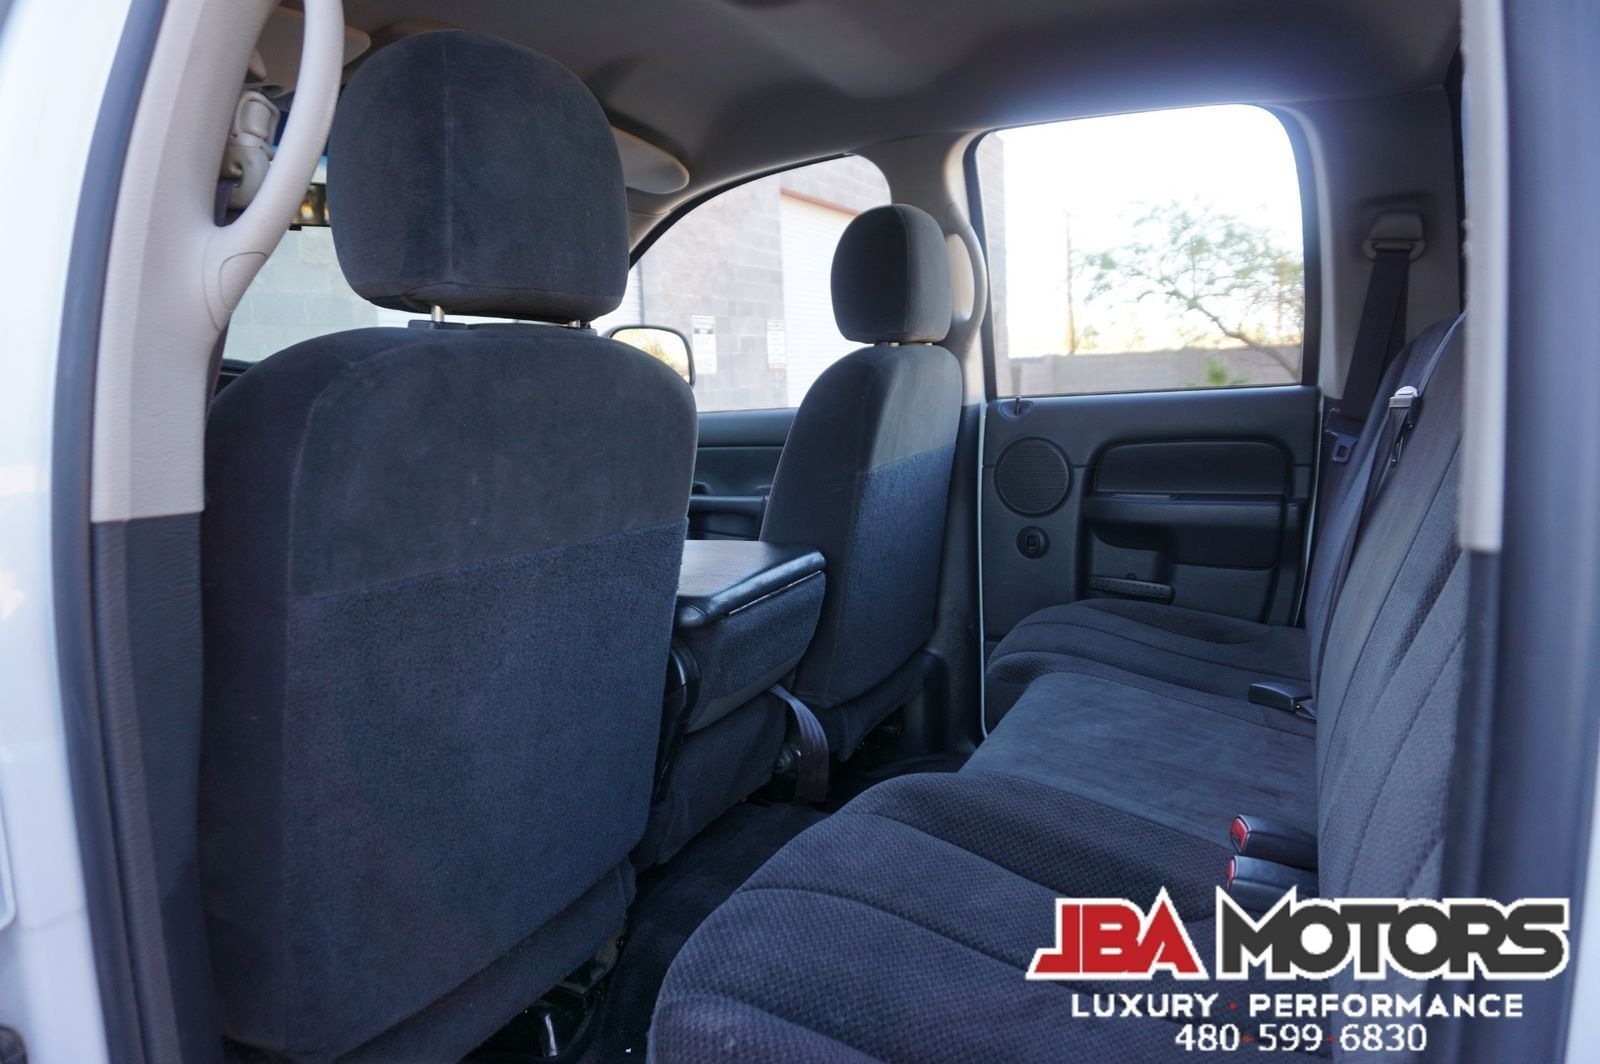 seat dash ram in otoriyoce options covers central automobiles door pickup photo bc used com great image kelowna dodge